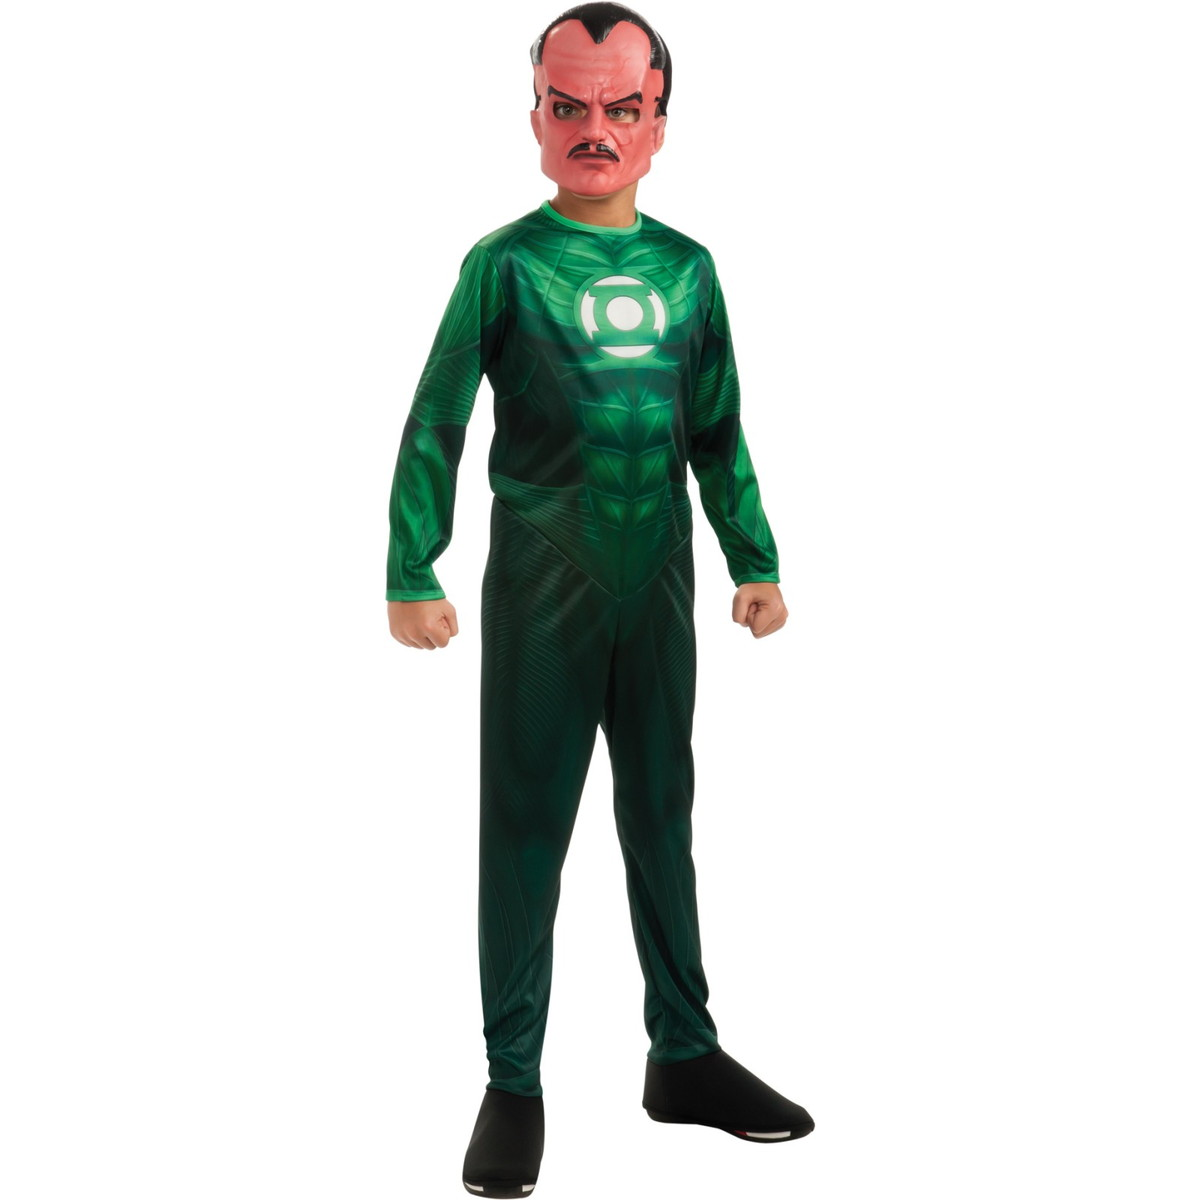 Halloween costumes kids Green Lantern power ring DC Comics costume Sinestro  child costume - Acomes Rakuten Global Market: Halloween Costumes Kids Green